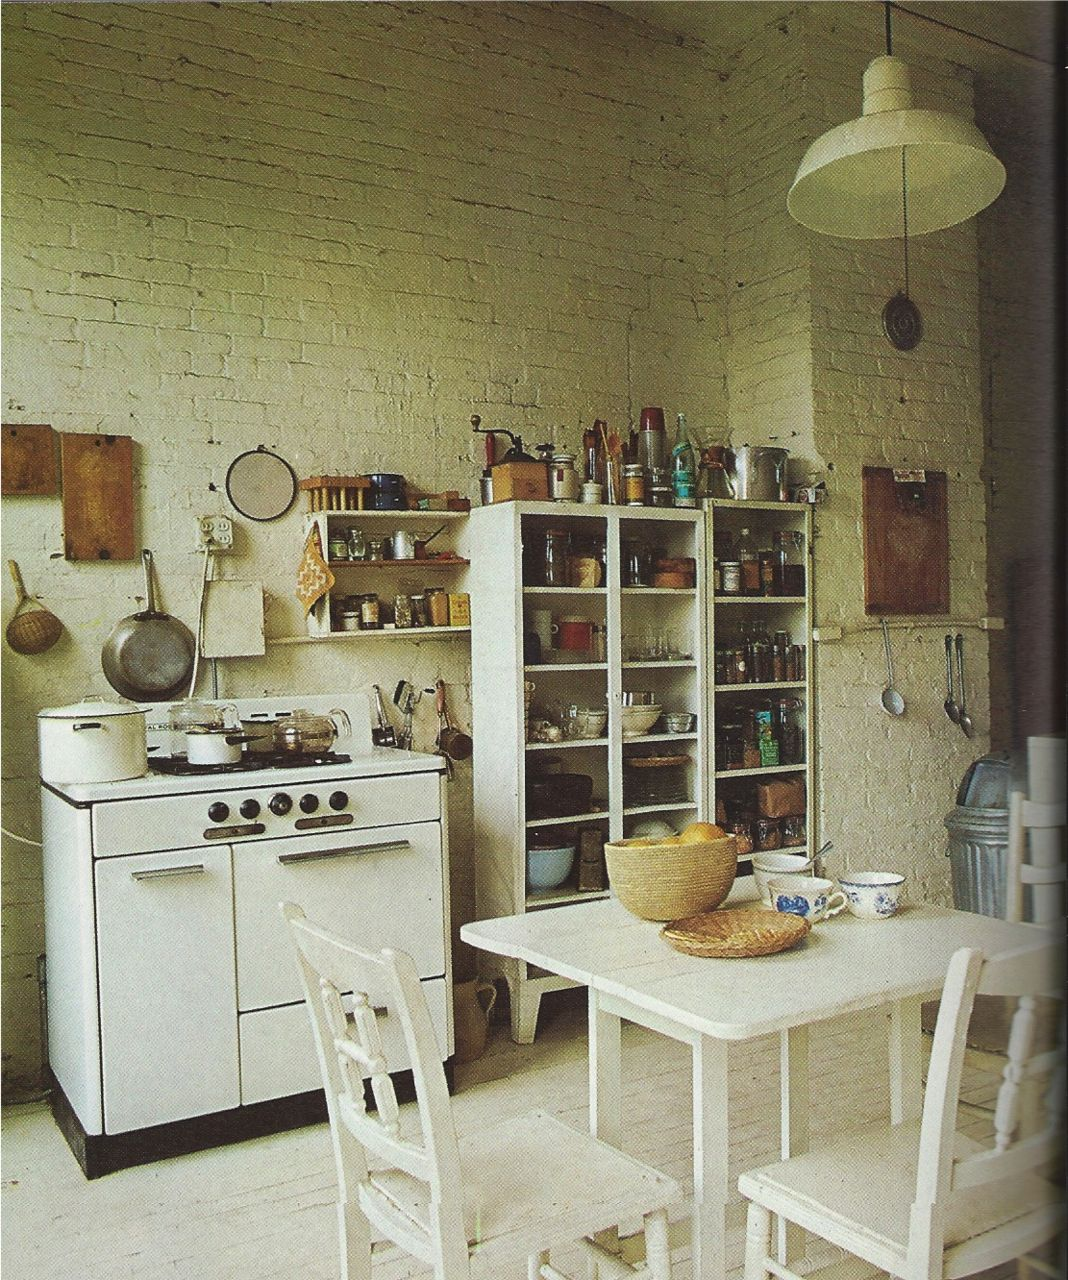 Nyc cigar factory converted kitchen from converted into houses no